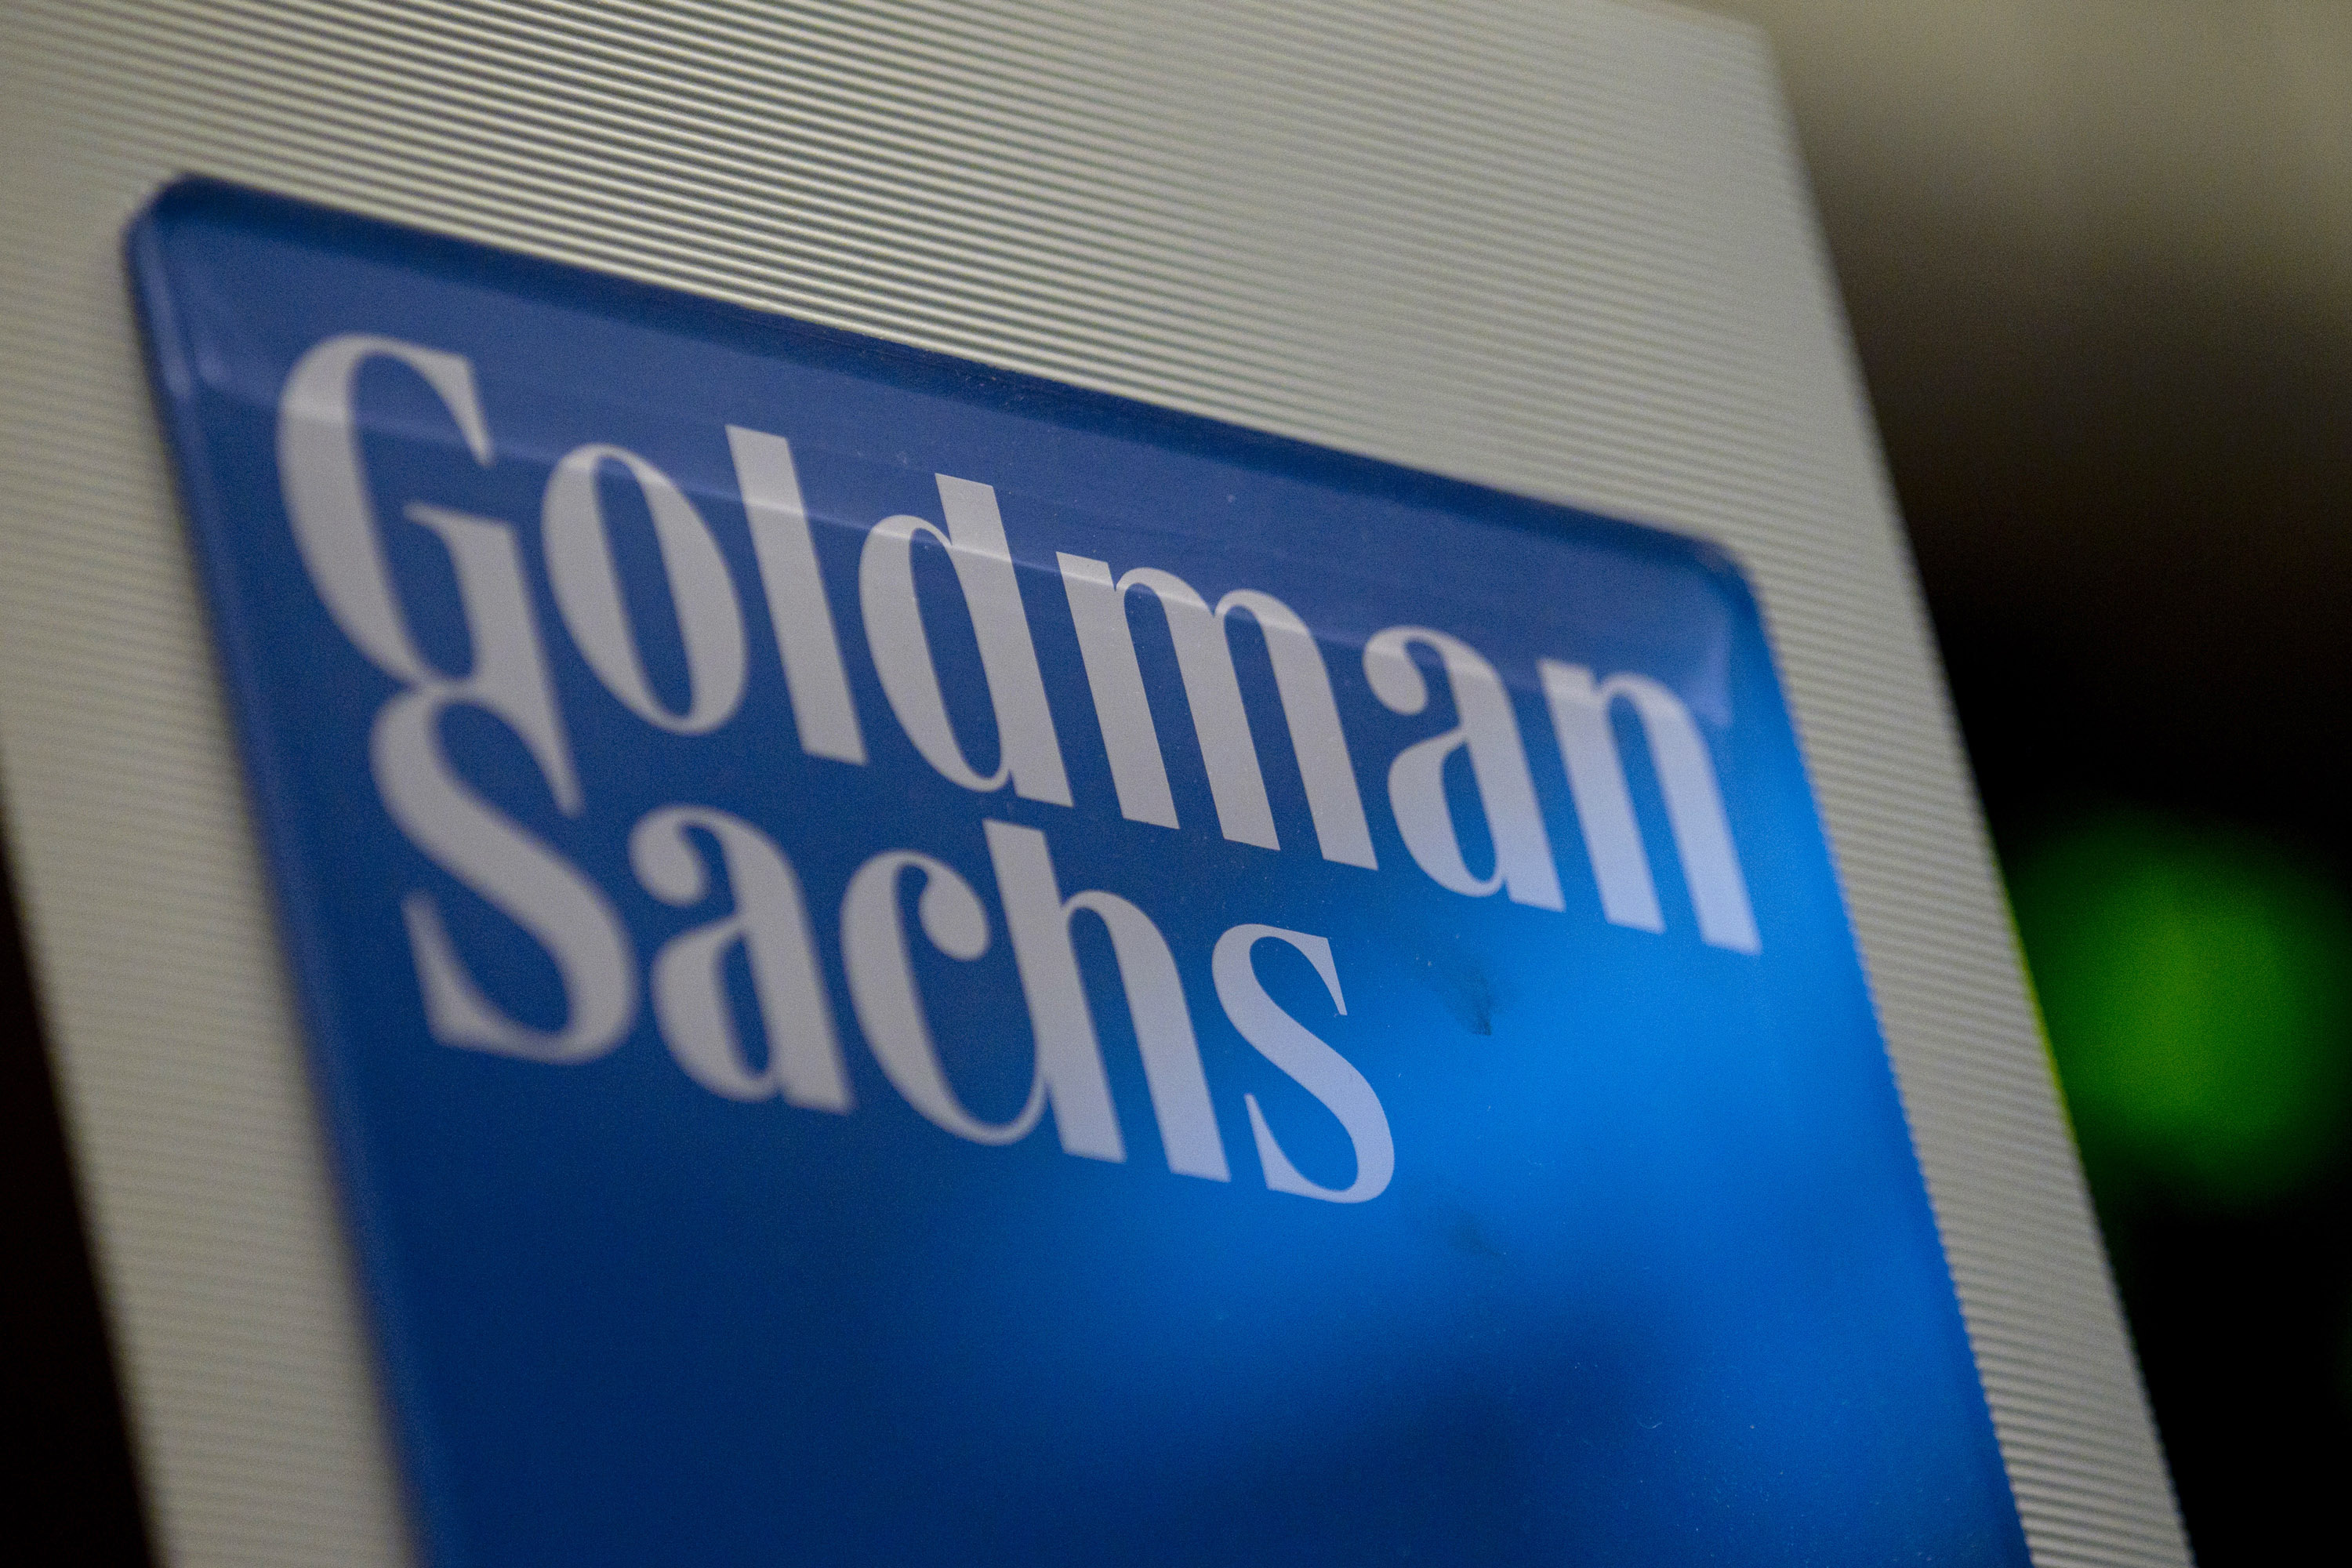 Goldman Sachs Group Inc. signage.